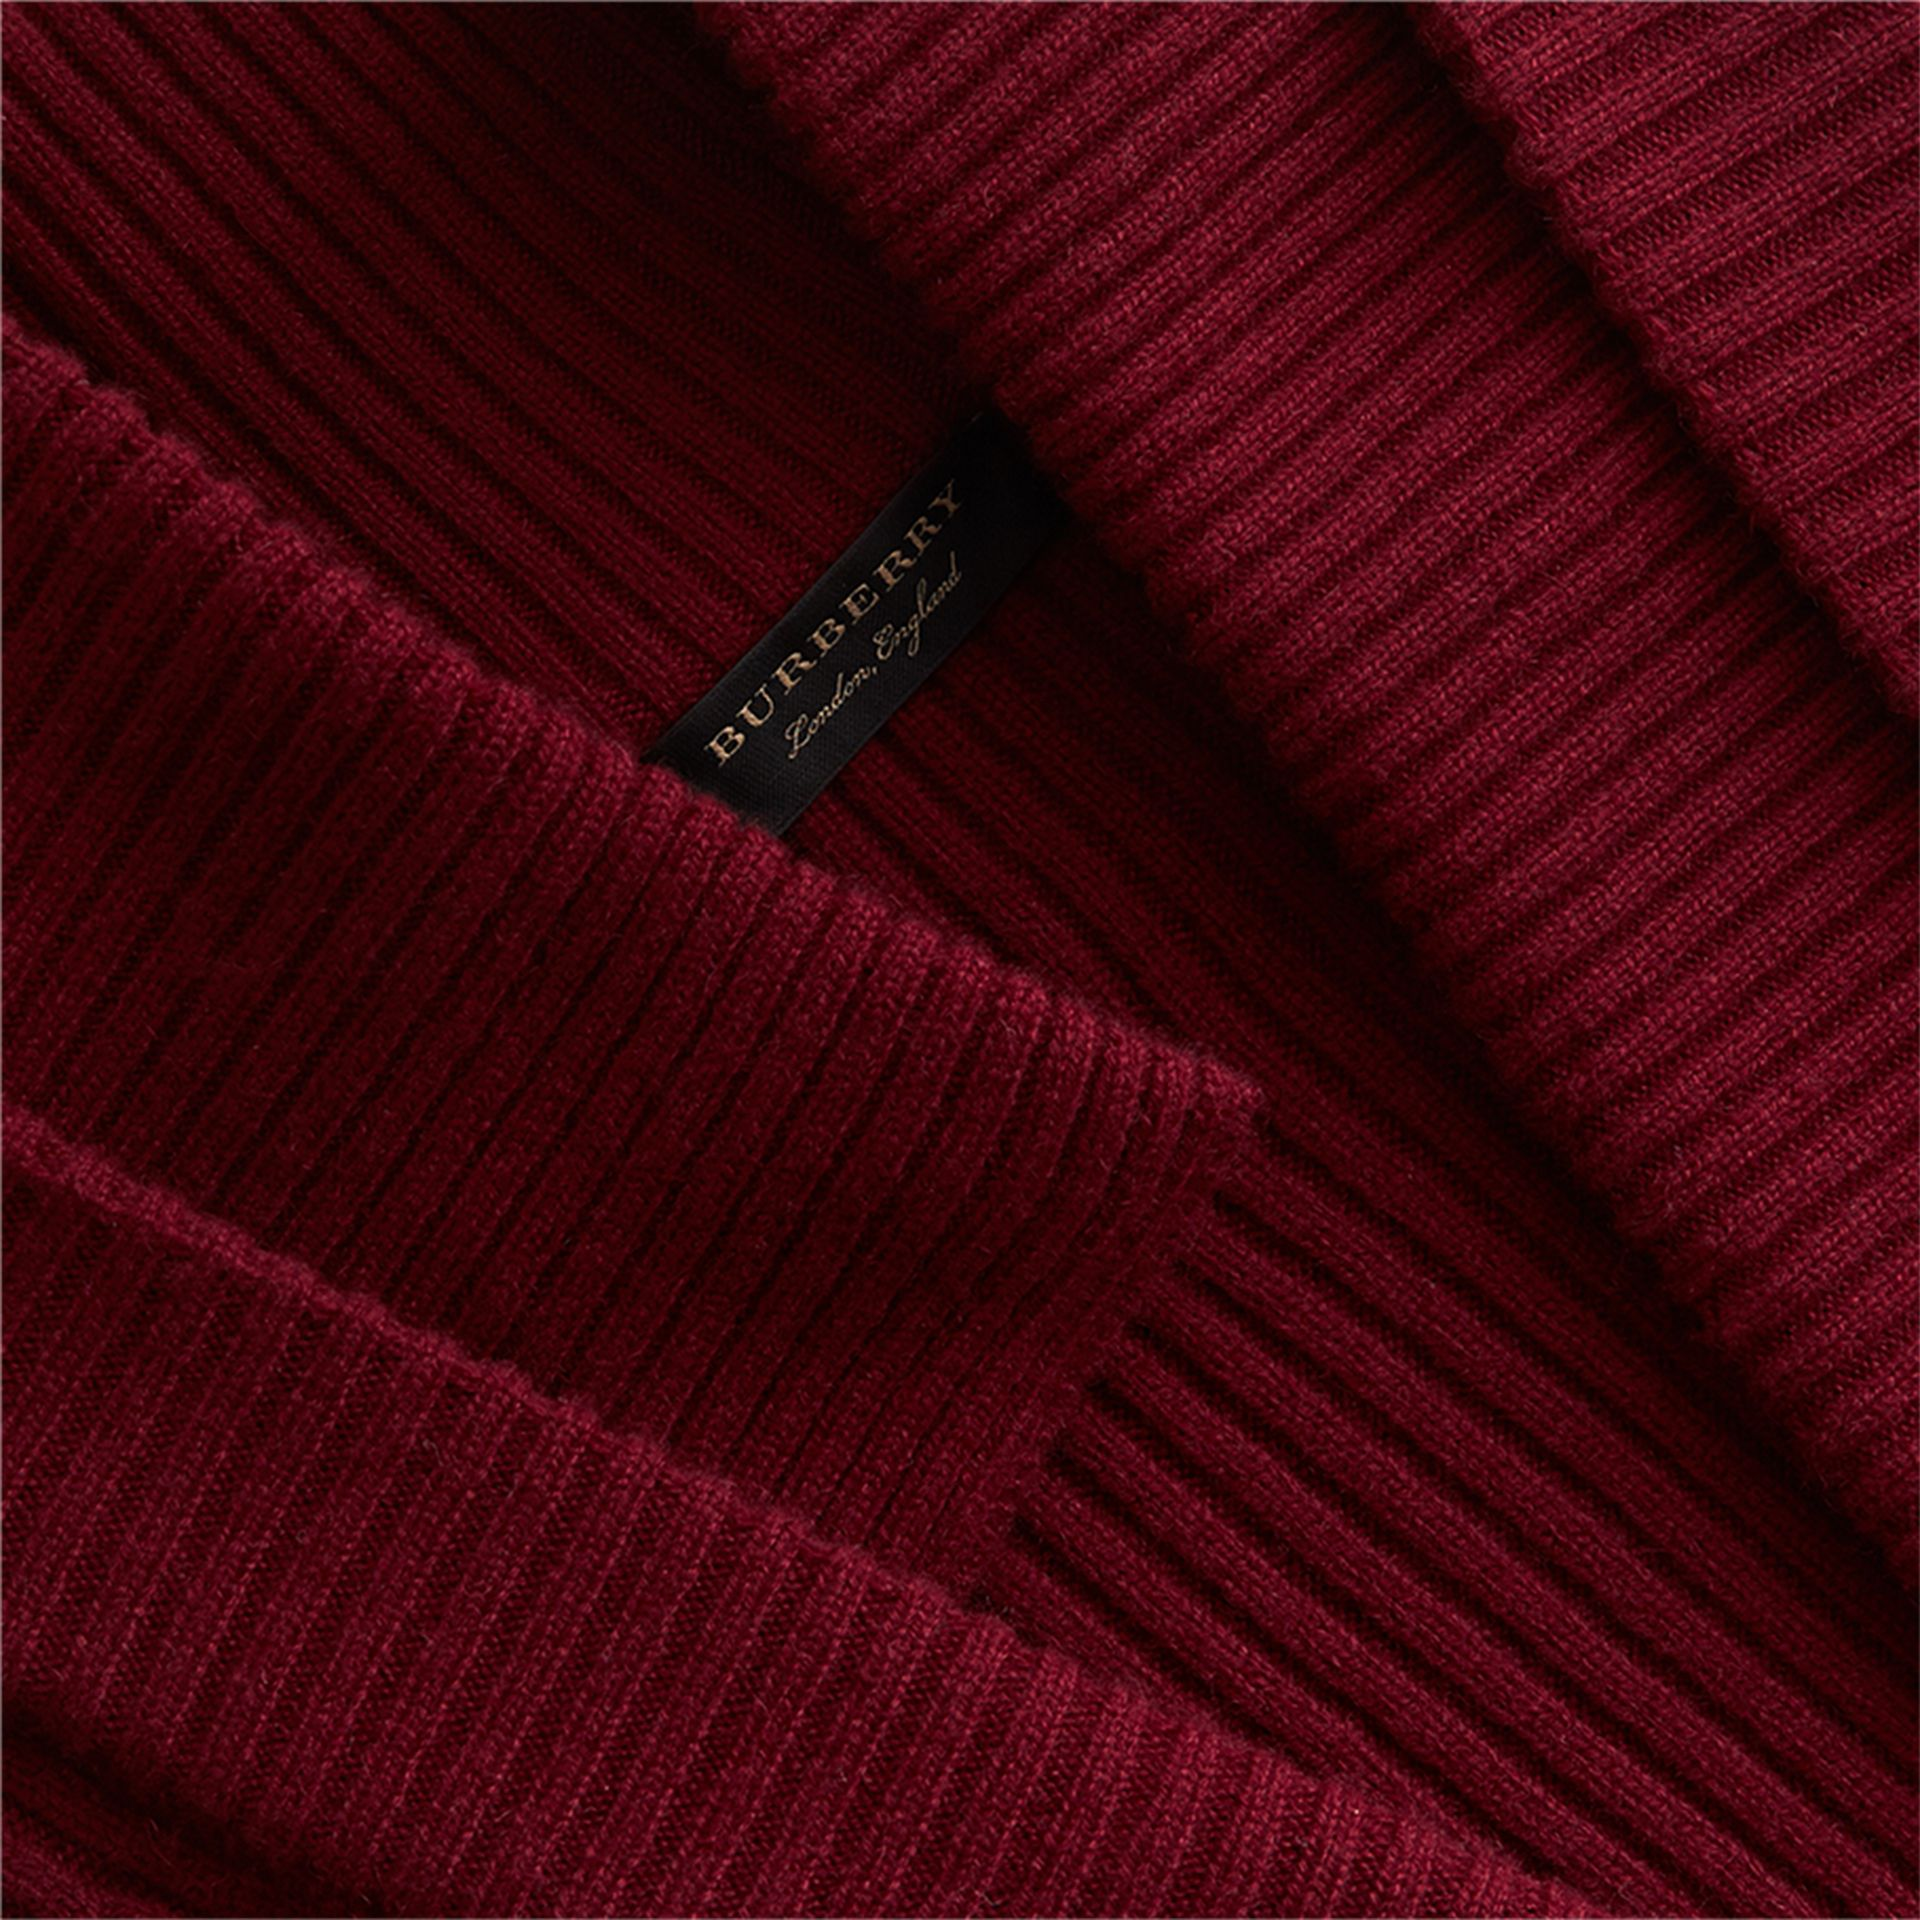 Knitted Wool Cashmere Military-inspired Jacket in Bordeaux - Women | Burberry Australia - gallery image 2